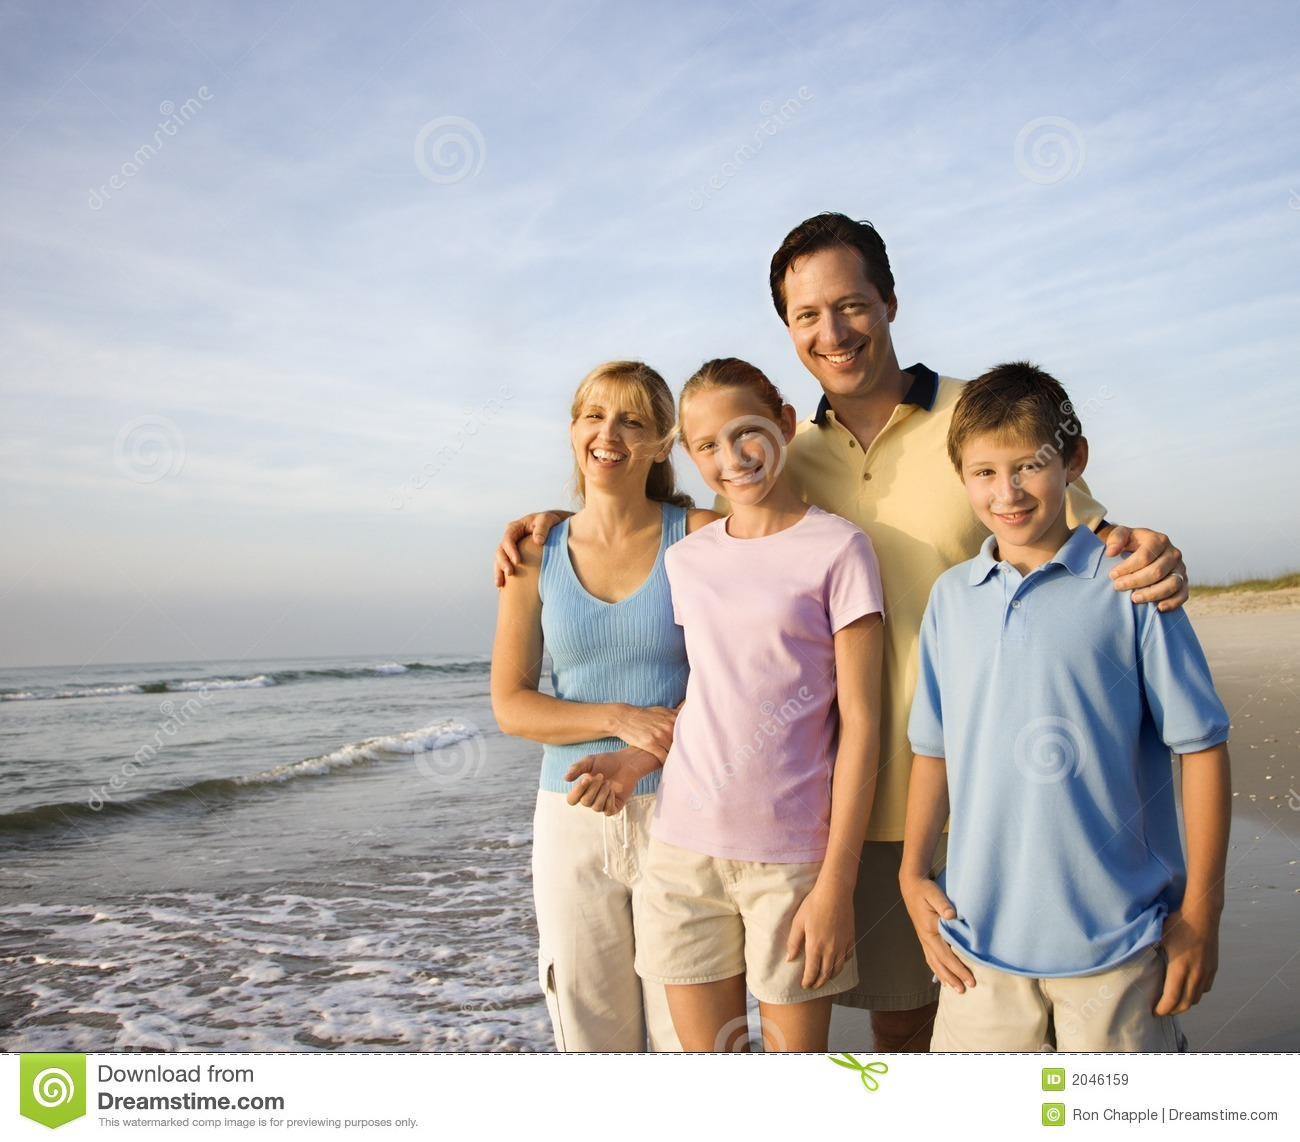 Royalty Free Stock Image Smiling family on beach